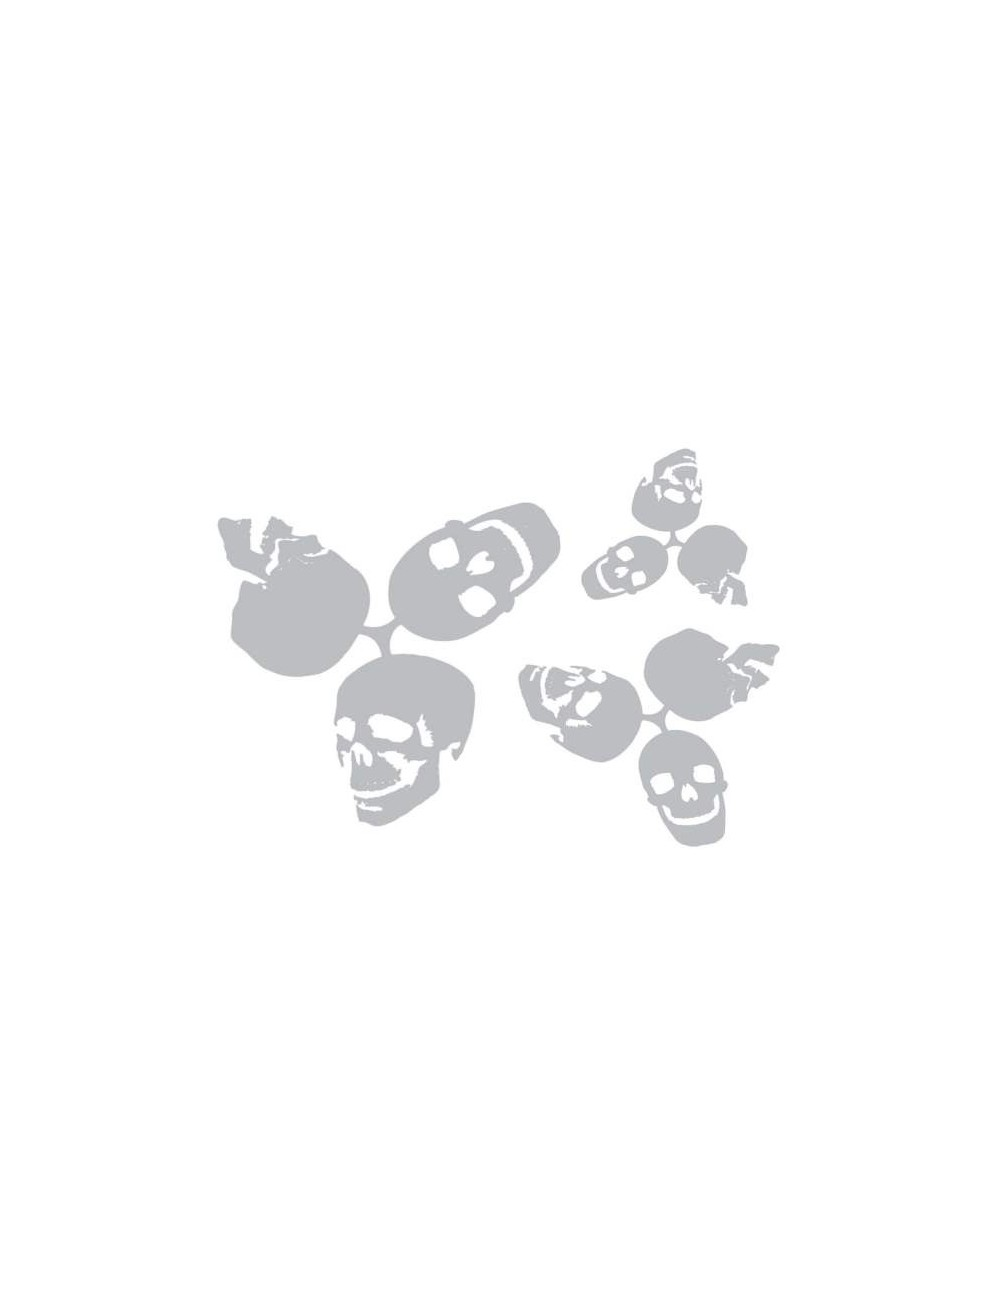 Turning Skull Stencil Set